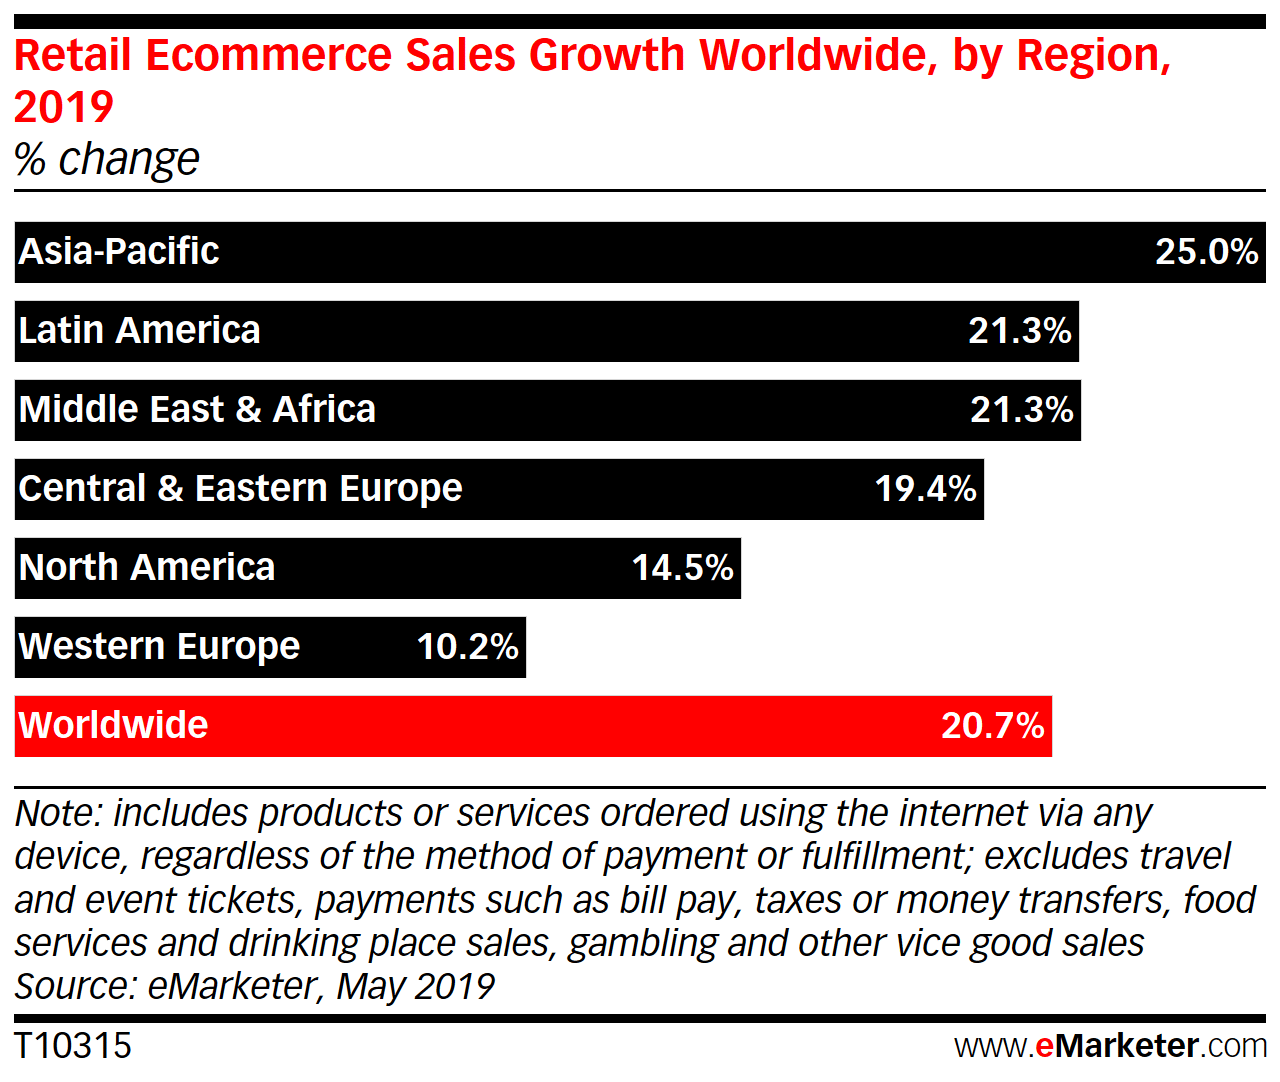 Retail ecommerce sales worldwide